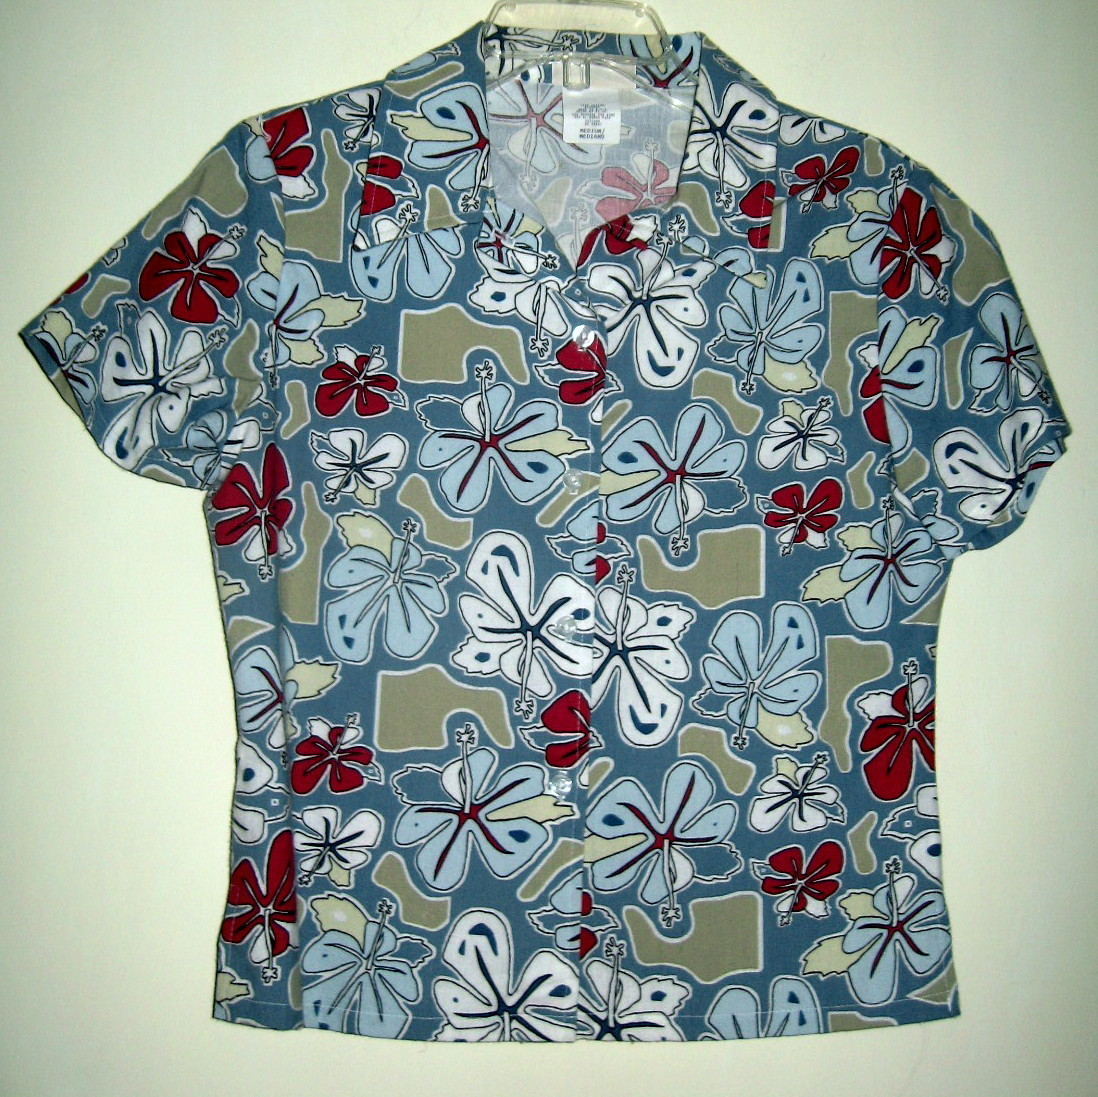 YOUNG LADIES HAWAIIAN SURF SHIRT, NEW, NEVER WORN, SIZE MEDIUM, SHORT SLEEVES